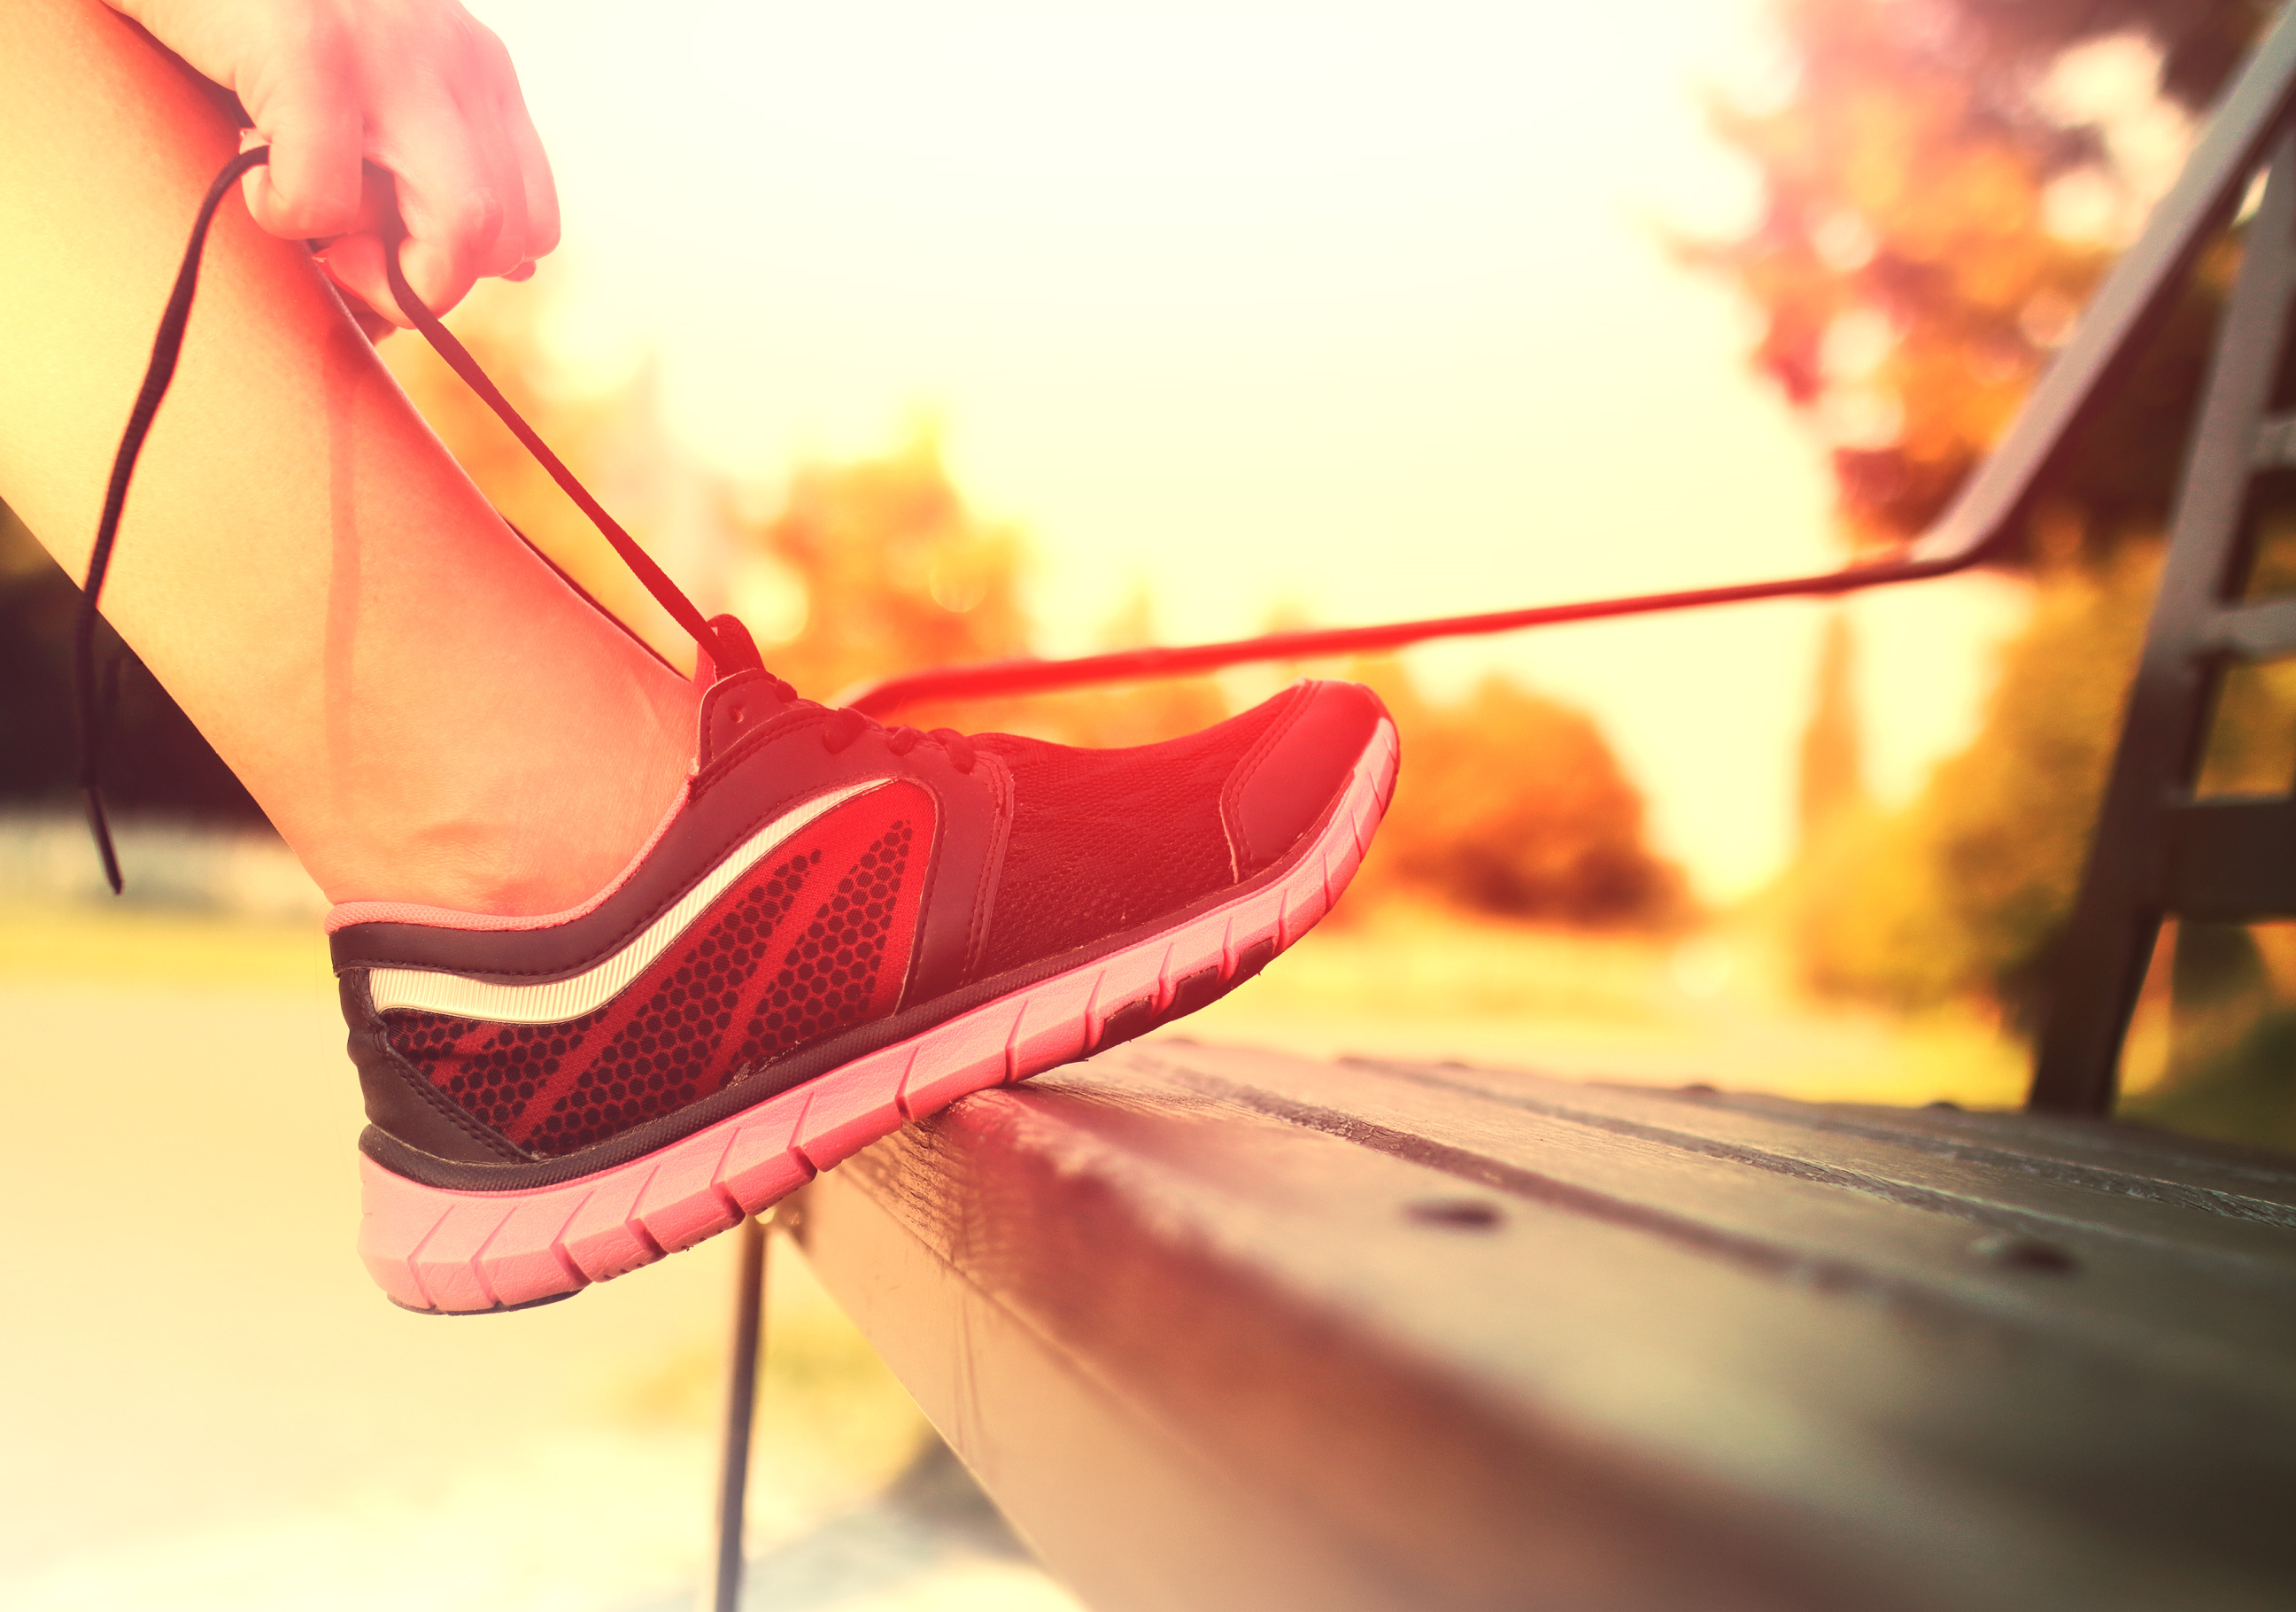 Running Shoes - Woman Tying Shoe Laces, Runner, Space, Sneakers, Slim, HQ Photo